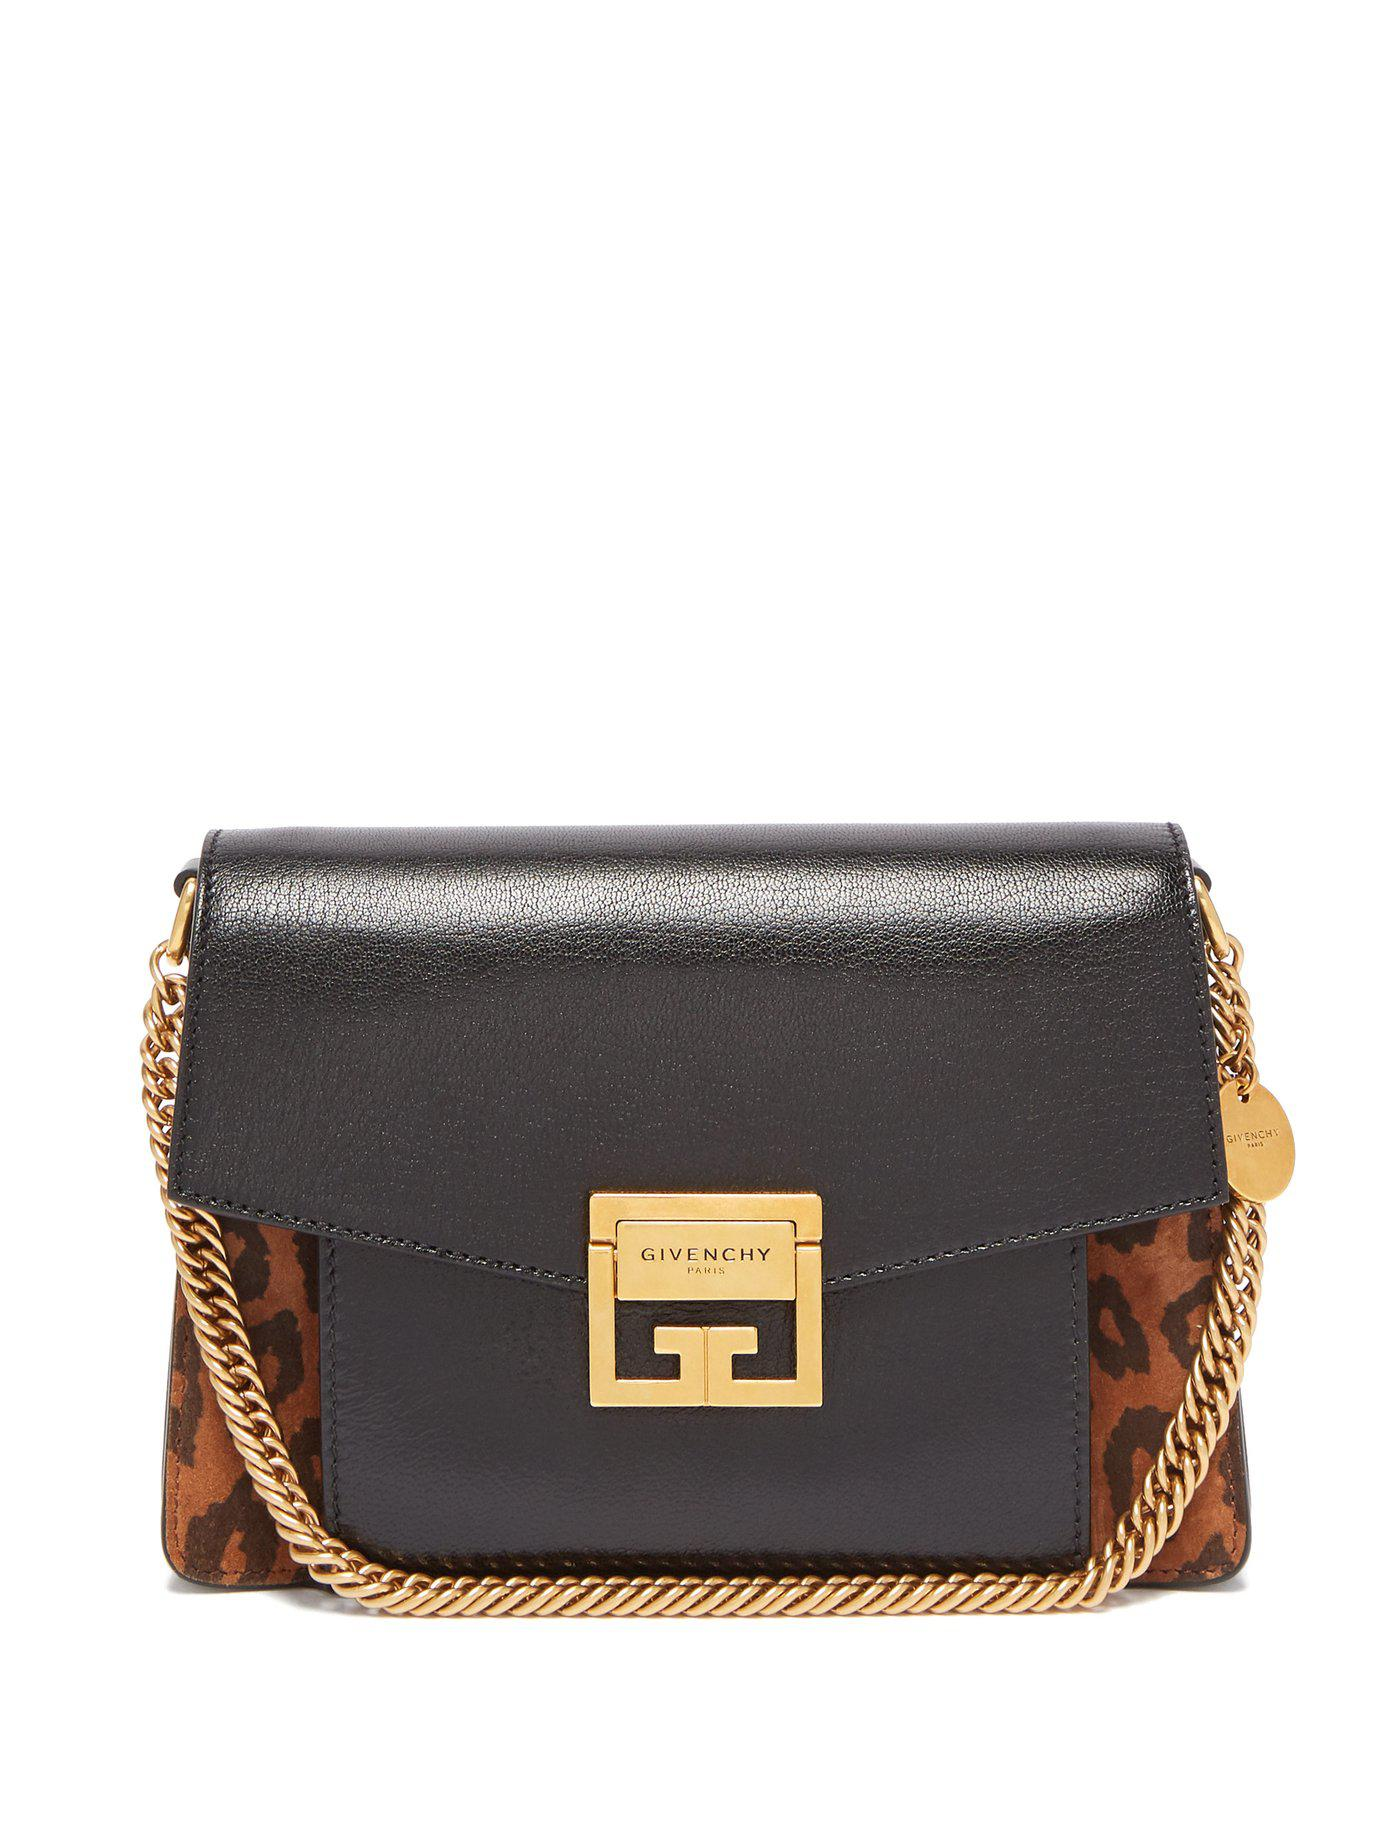 f615035927 Givenchy - Multicolor Gv3 Mini Suede And Leather Cross Body Bag - Lyst.  View fullscreen